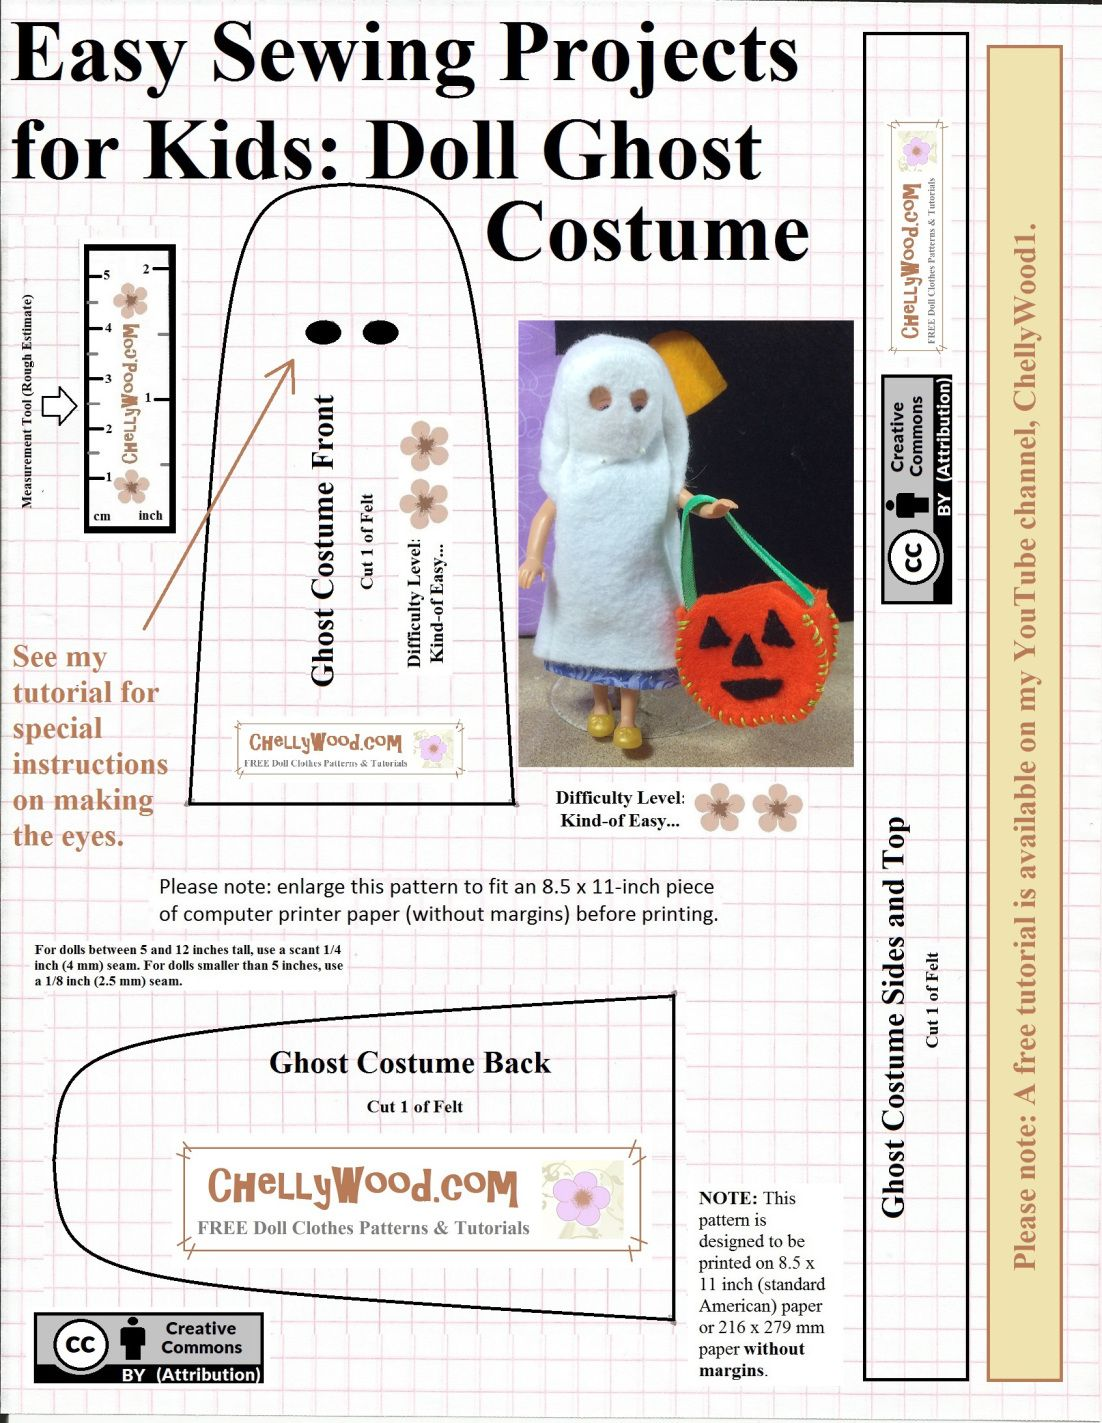 Visit chellywood for free printable sewing patterns for dolls visit chellywood for free printable sewing patterns for dolls of many shapes and jeuxipadfo Gallery